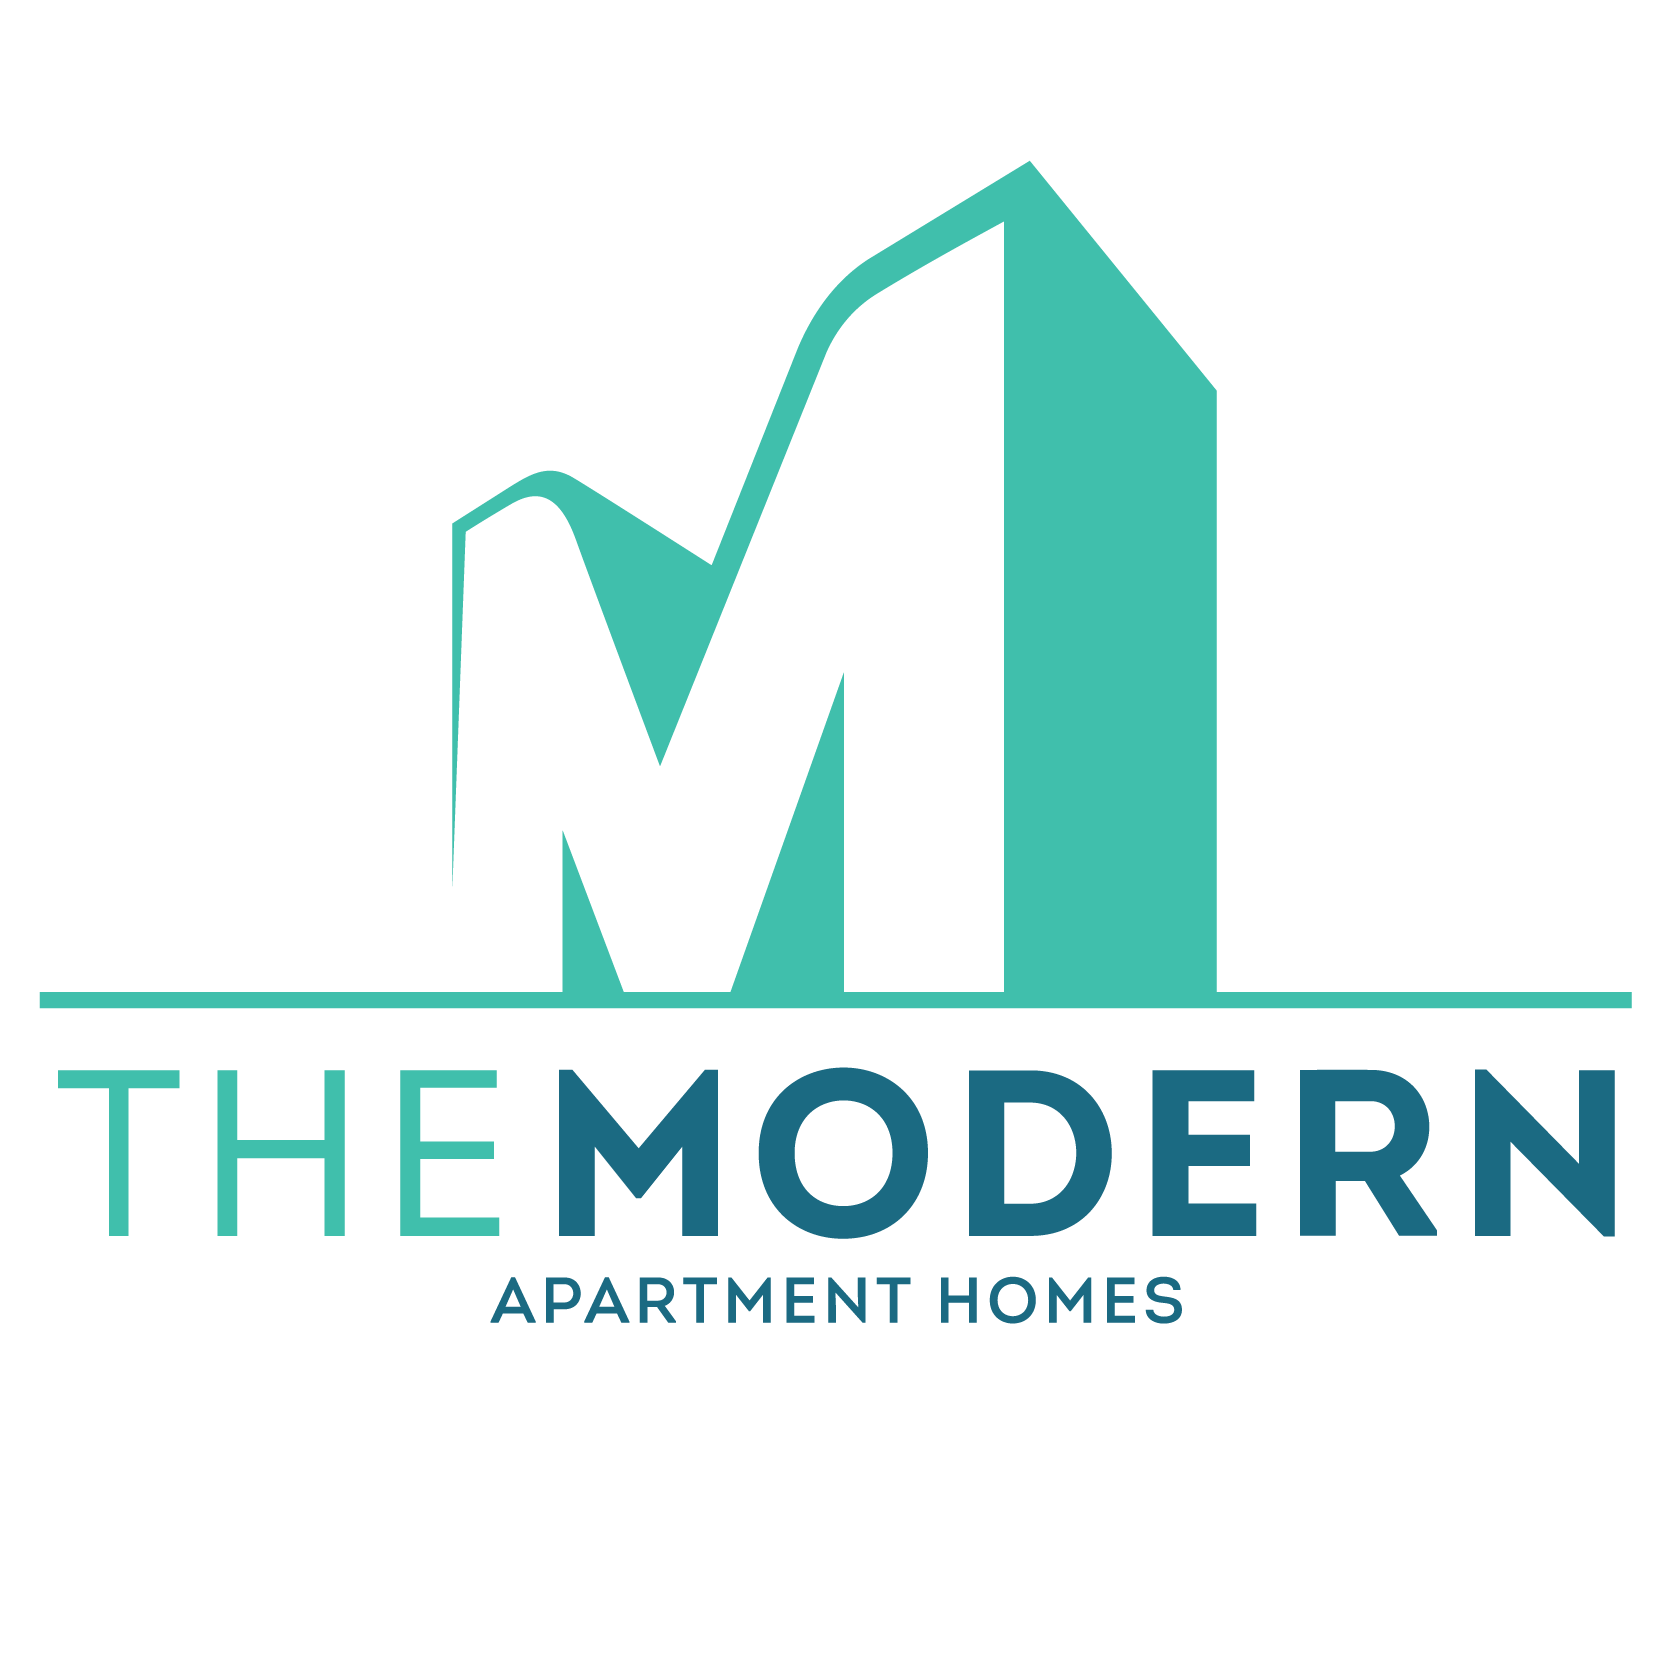 The Modern Apartment Homes